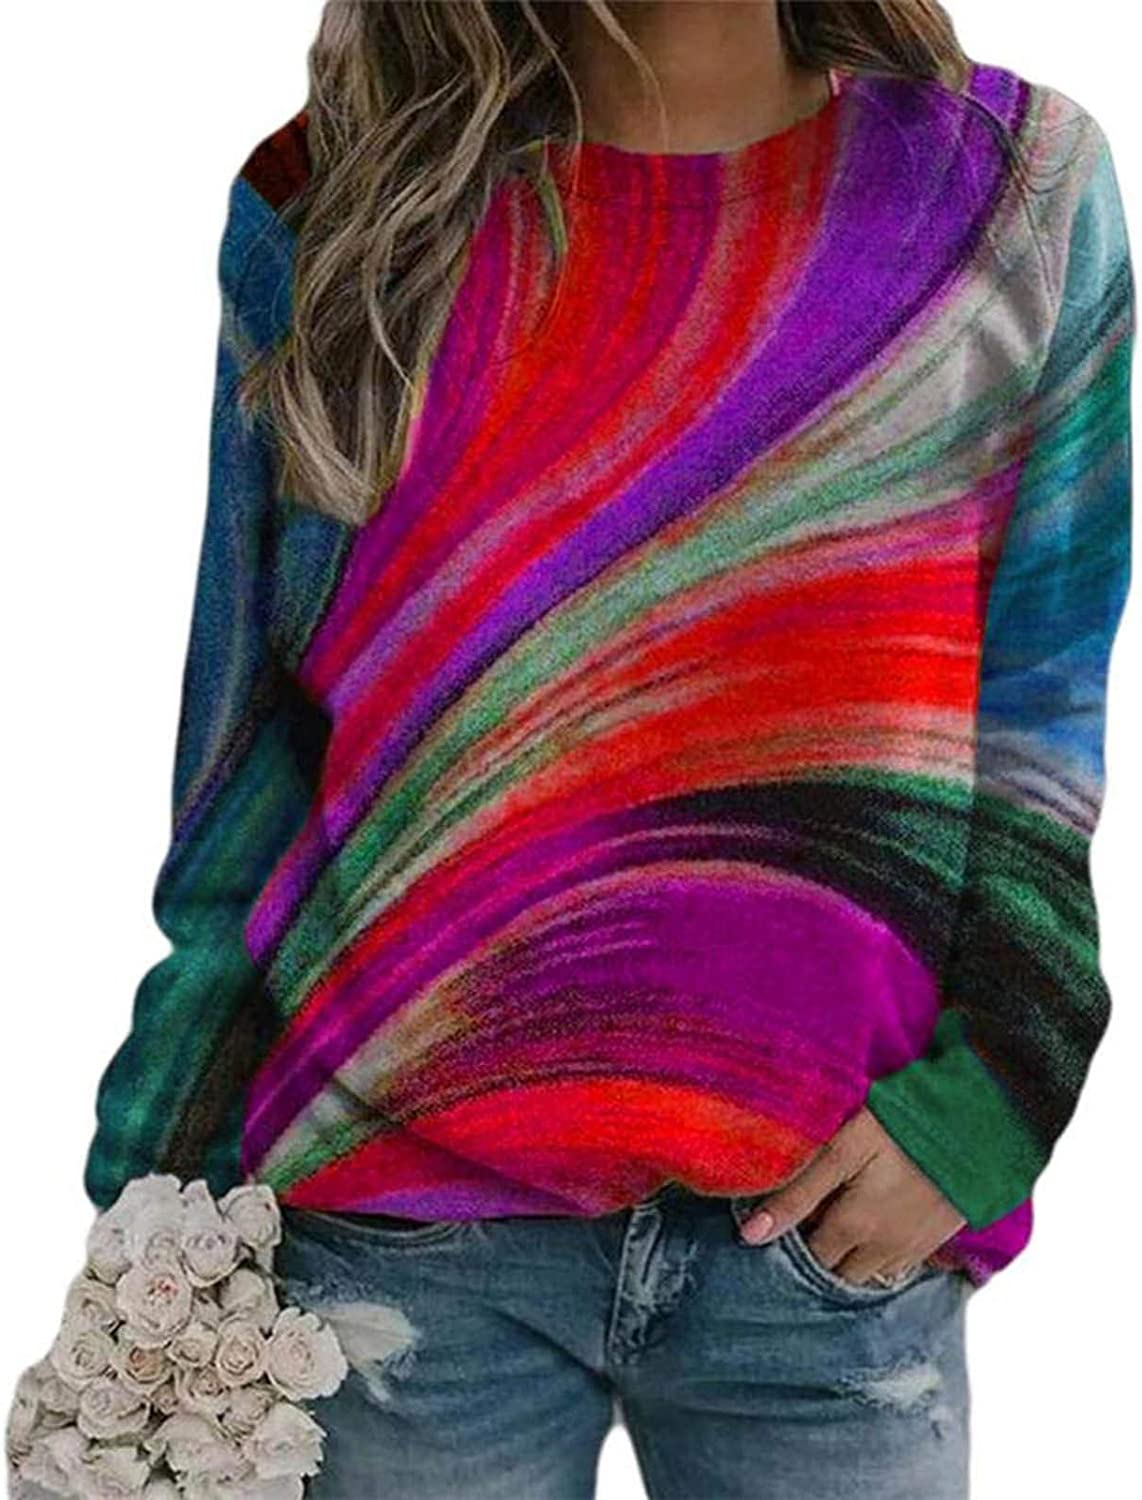 AODONG Sweater for Womens Fashion Long Sleeves Multicolor Sweatshirts Casual Pullover Sweat Shirt Blouse Tops